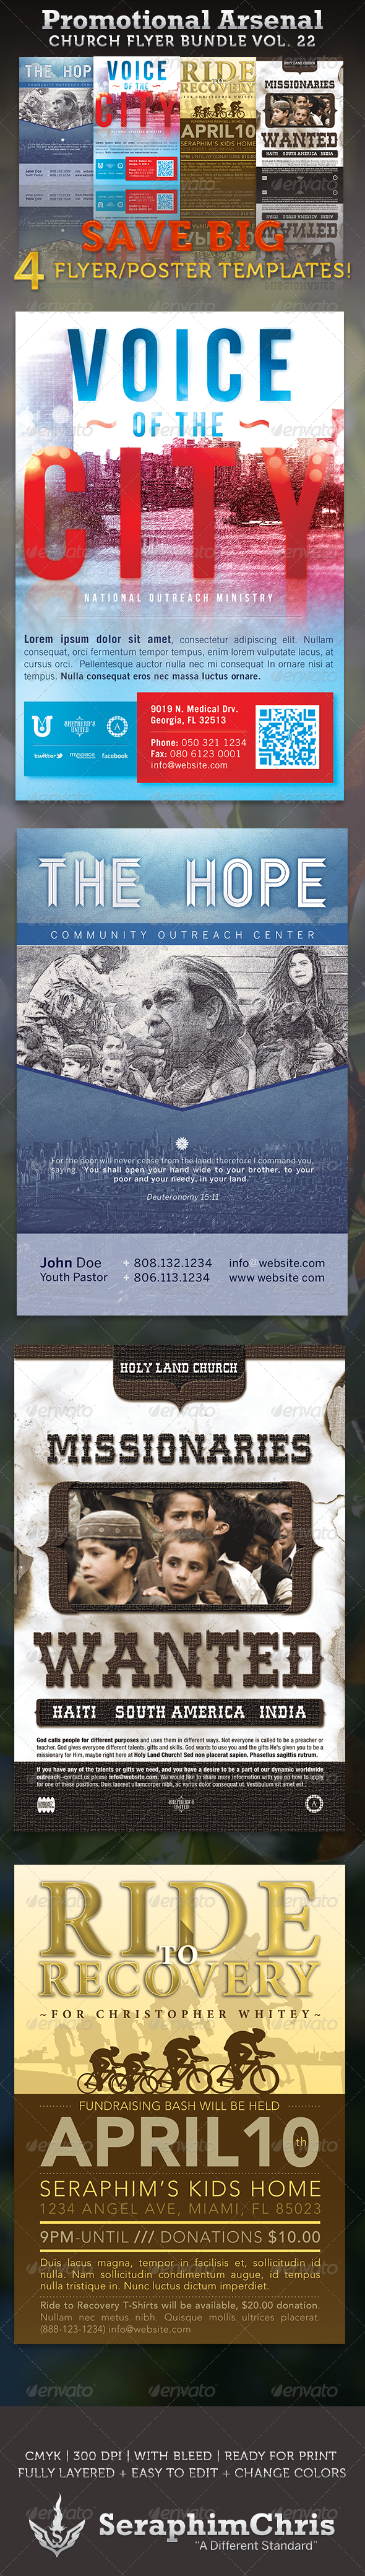 GraphicRiver Promotional Arsenal Church Flyer Bundle 22 3590489